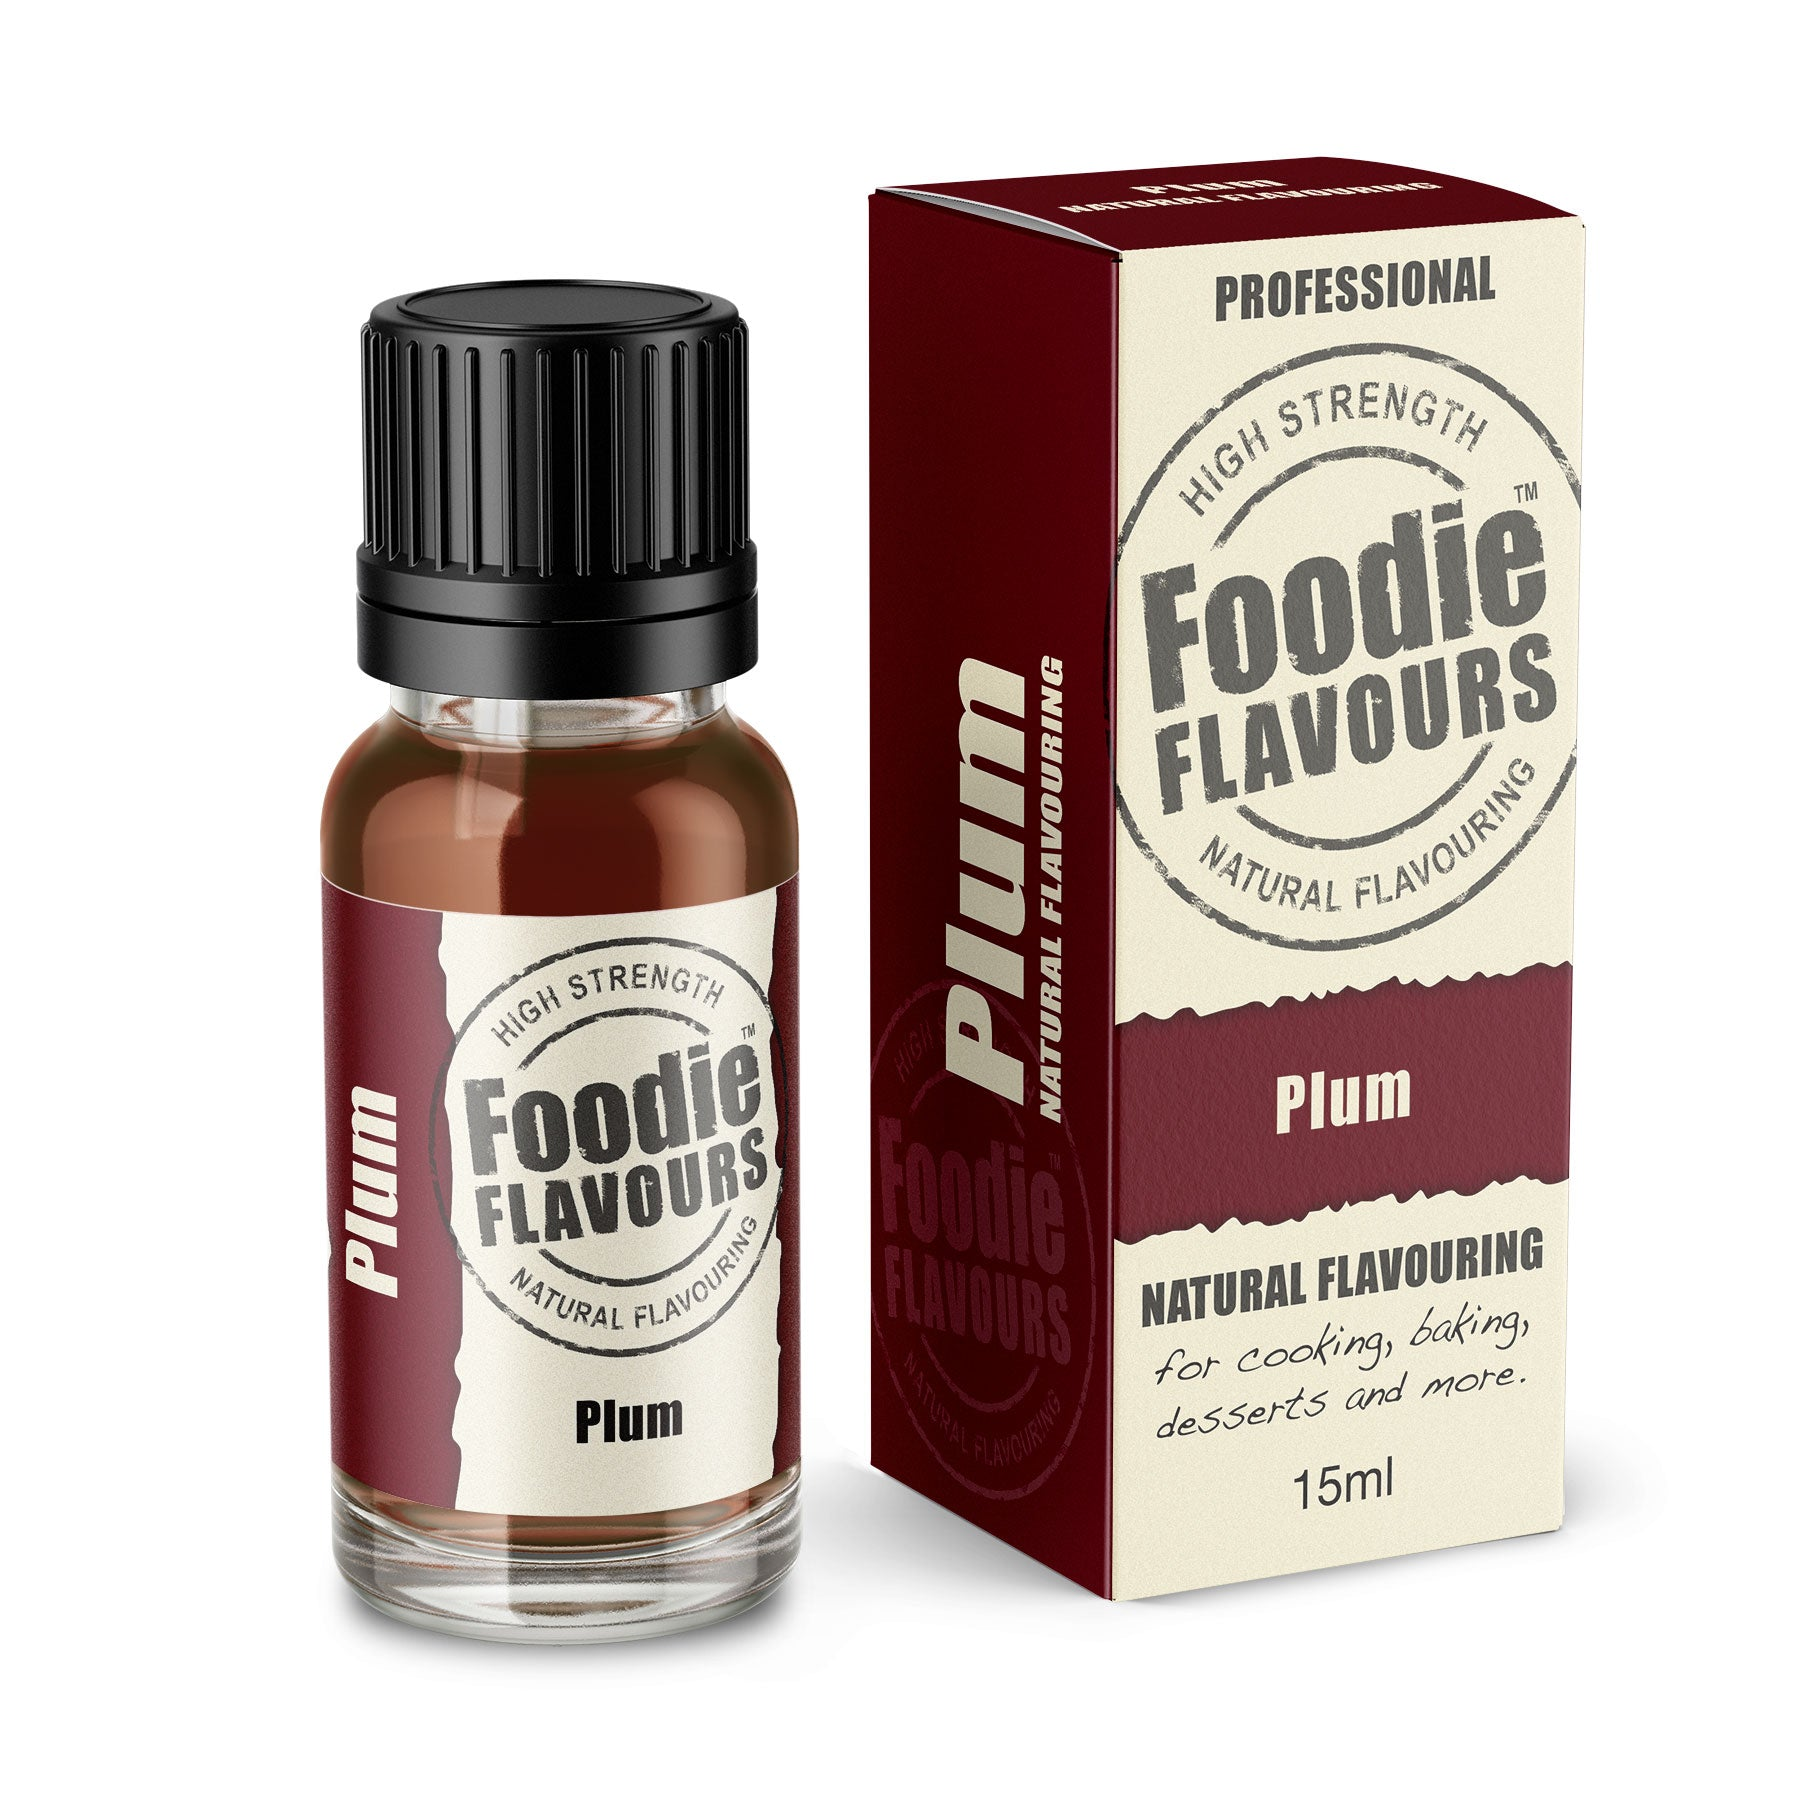 Plum Natural Flavouring 15ml